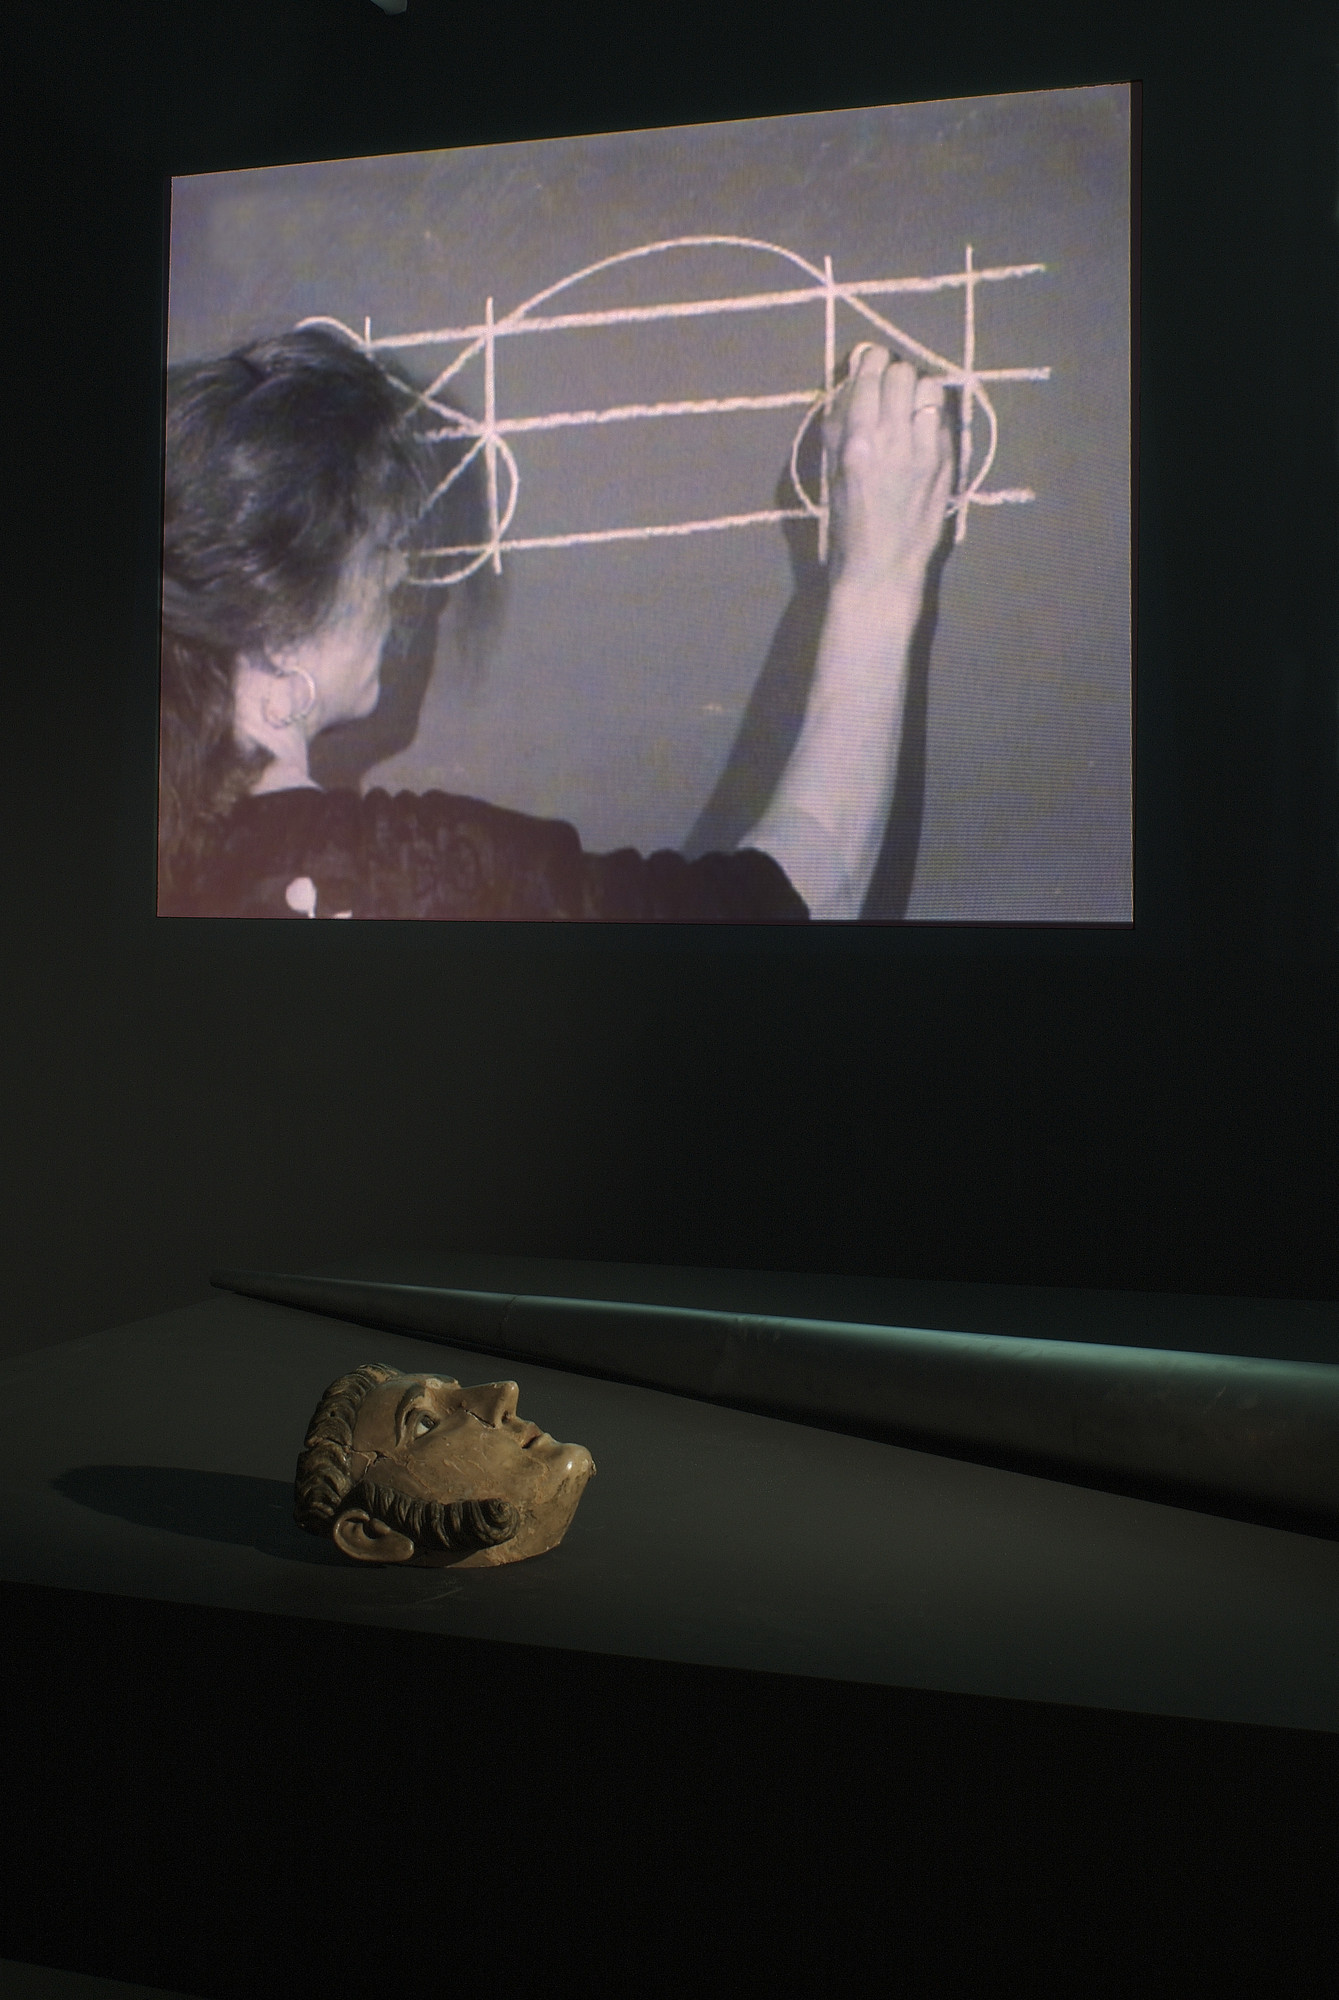 Joan Jonas. Mirage (installation detail). 1976/1994/2003. The Museum of Modern Art, New York. Gift of Richard Massey, Clarissa Alcock Bronfman, Agnes Gund, and Committee on Media Funds. Courtesy Yvon Lambert, Paris and New York